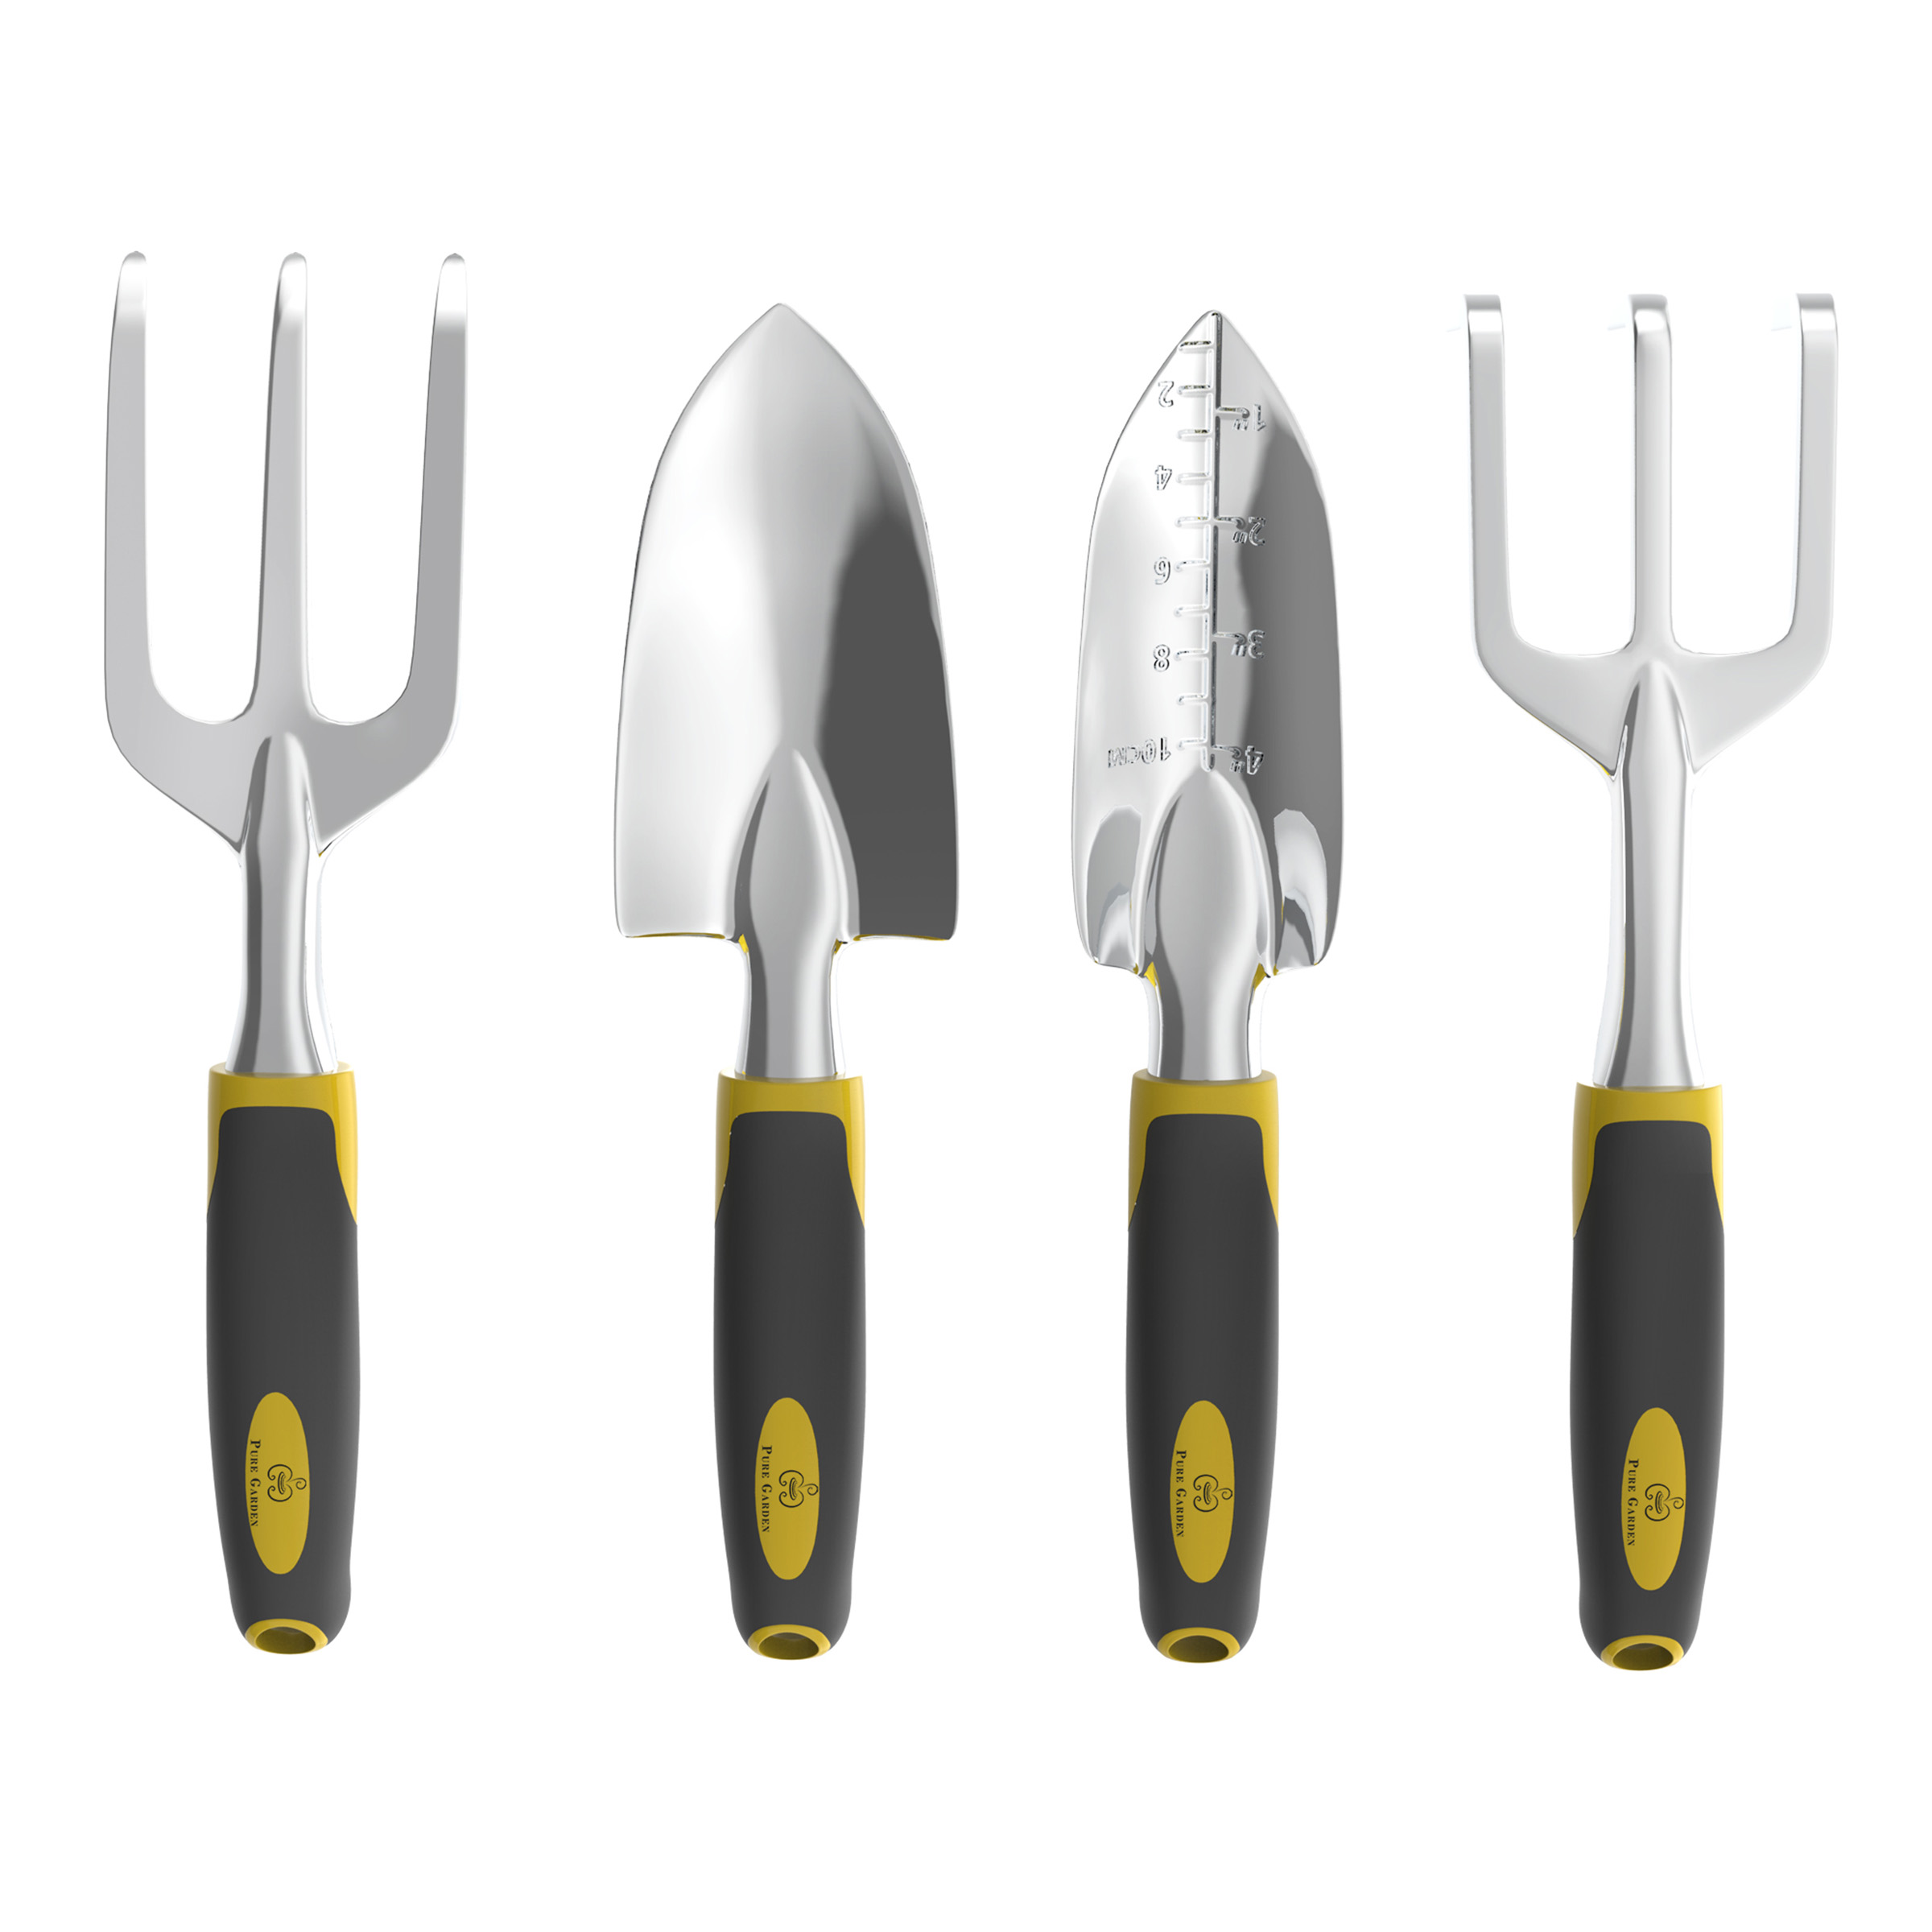 4 Piece Gardening Tool Set  Garden Hand Tools With Cultivator,  Transplanter, Trowel And